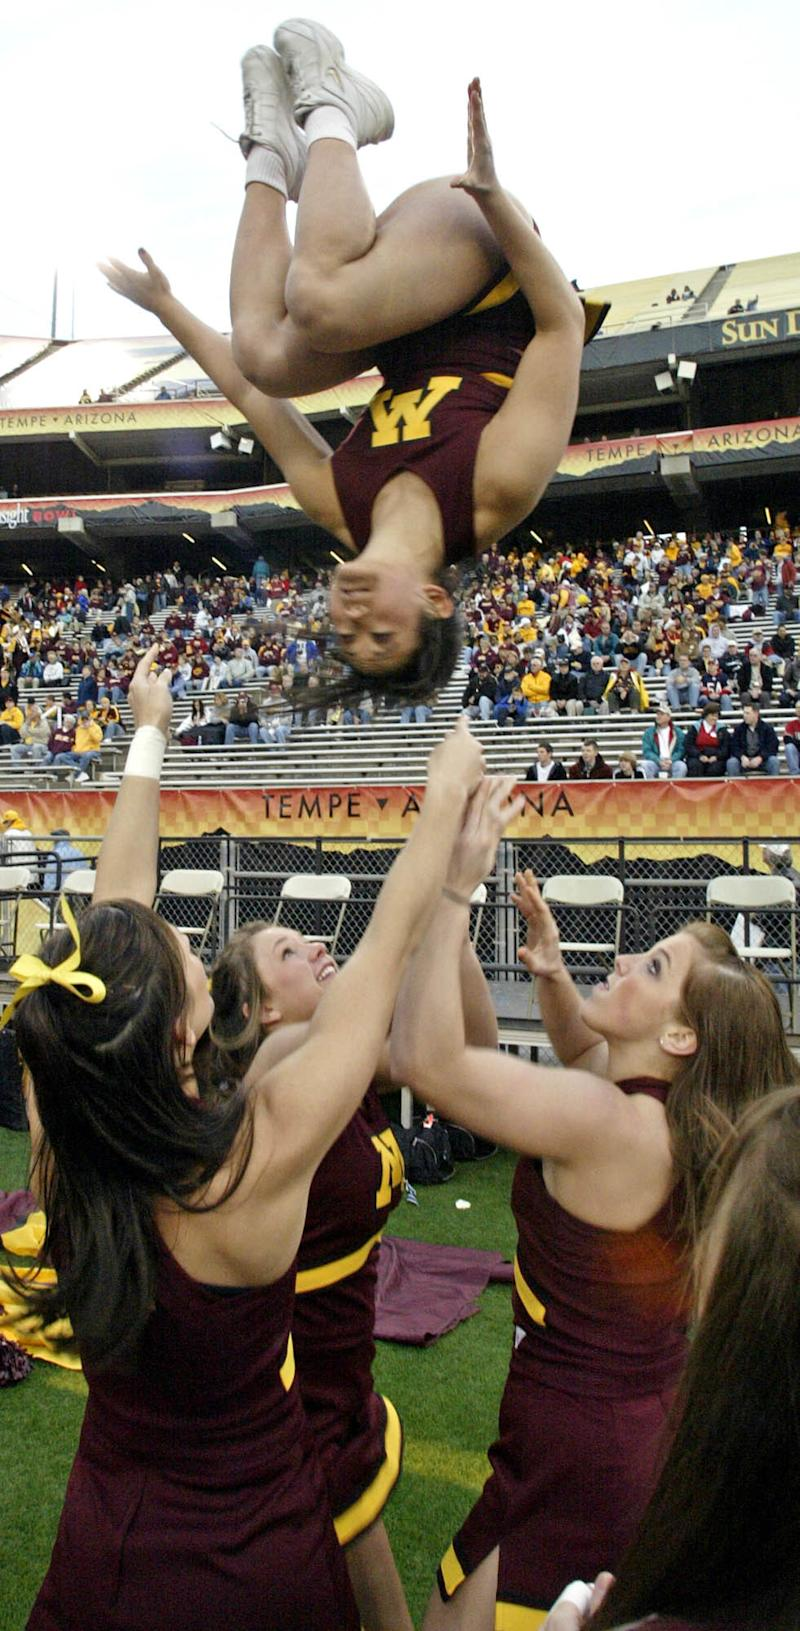 MARLIN LEVISON *mlevison@startribune.com 12/29/06 Assign# 107906- Minnesota Gophers vs. Texas Tech in Insight Bowl. Minnesota cheerleaders and marching band get in the spirit of the game with 'basket tosses' on the sideline while the band waves 'cheer sticks' from their stadium seats. IN THIS PHOTO: Cheerleader Katie Lund of Minneapolis is tossed in the air by teammates. (Photo by Marlin Levison/Star Tribune via Getty Images)